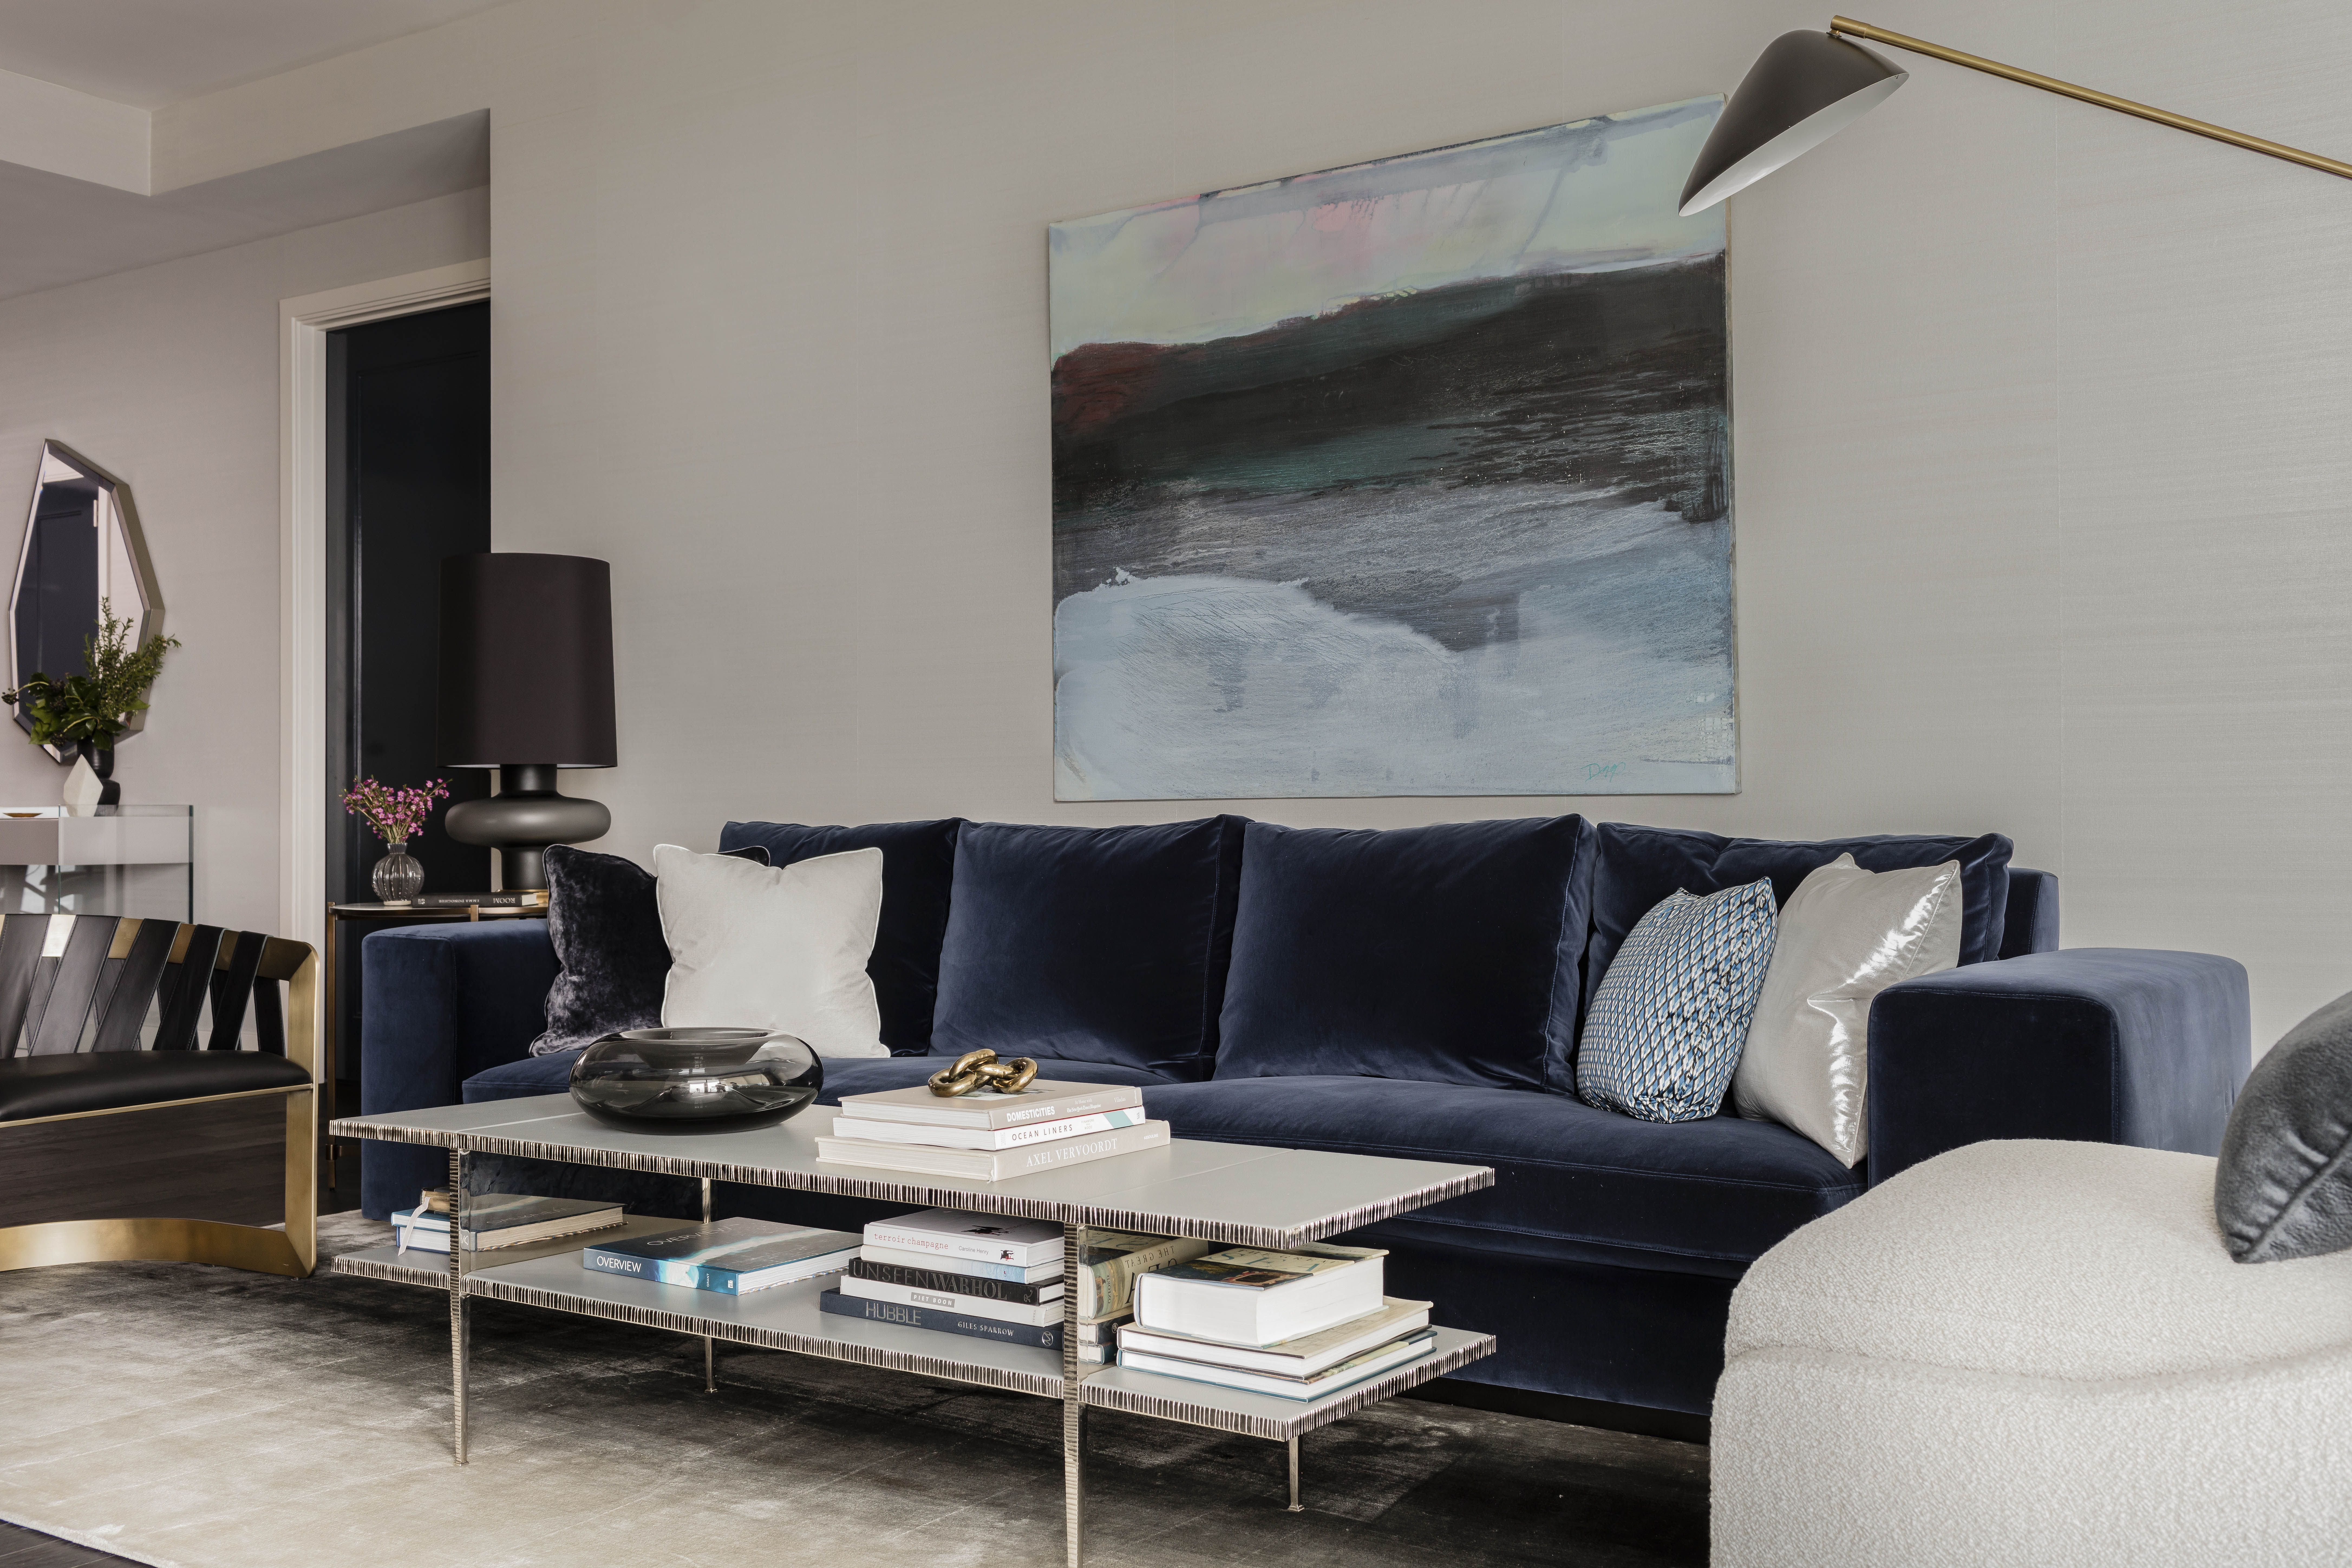 50 Liberty 1 Elms Interior Design Living Area With Lush Navy Blue Sofa Silk Ombre Area Rug And Black Le Boston Interior Design Living Room Images Interior